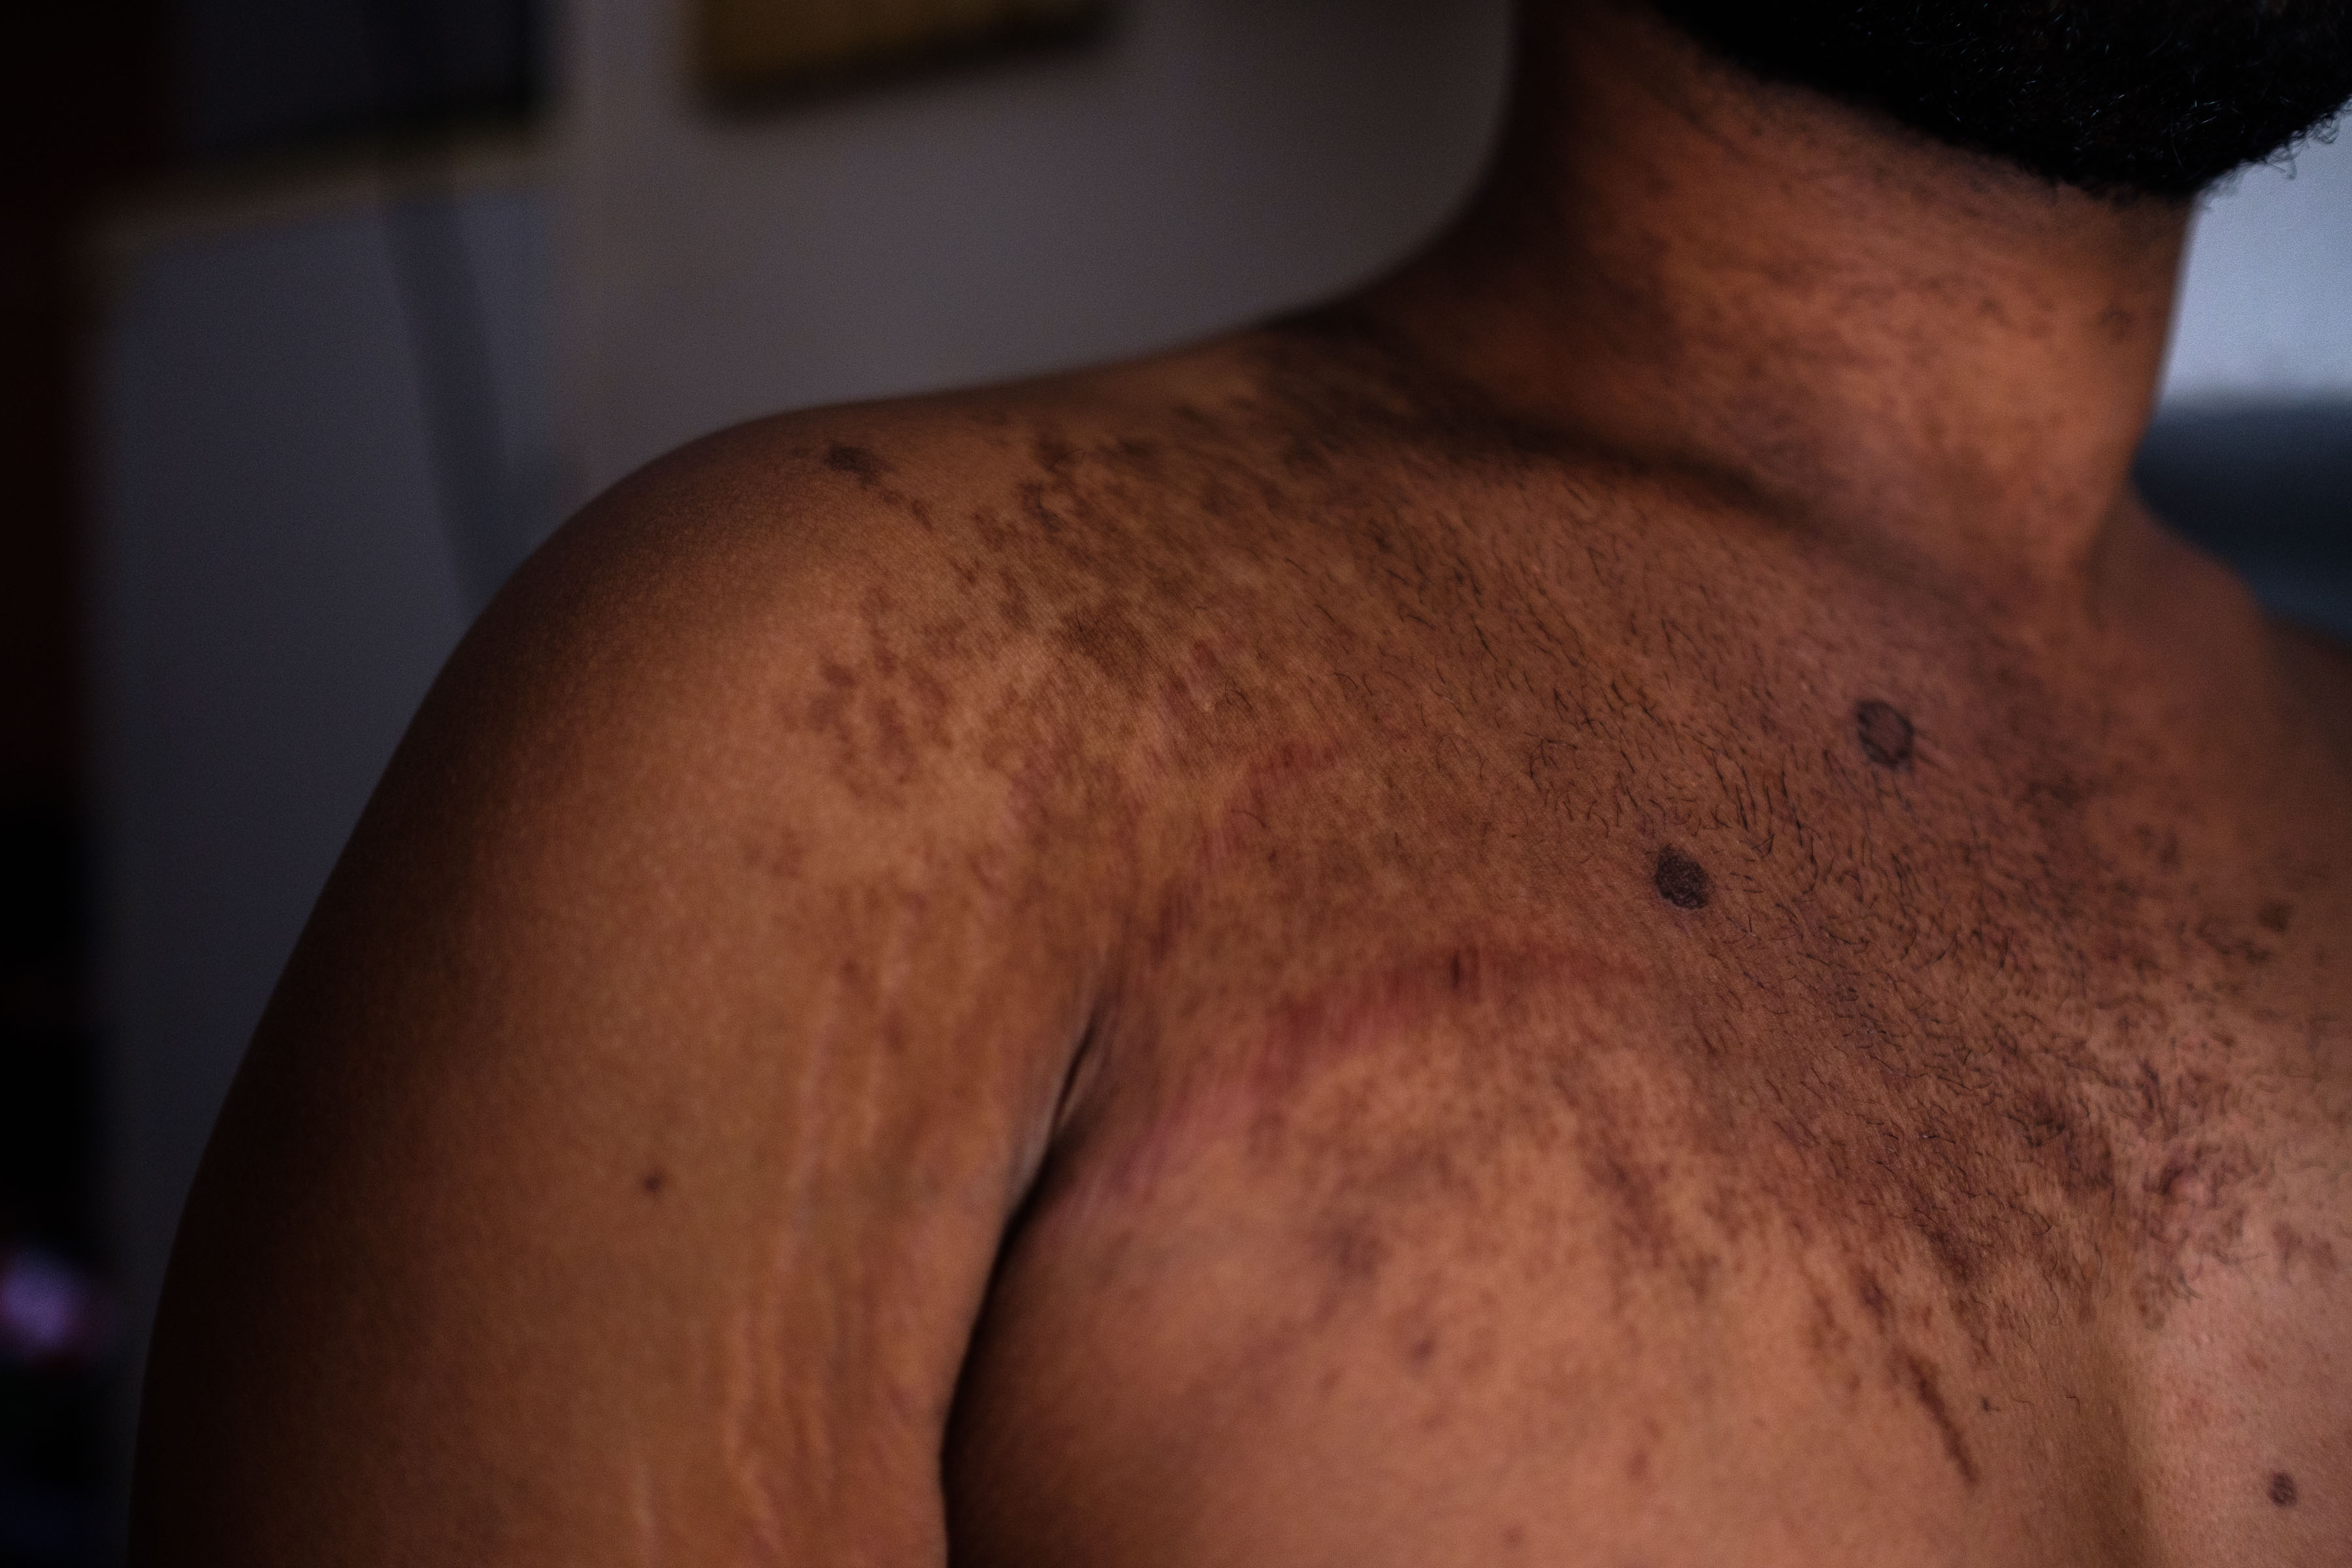 9 December 2019: Ishmael has been assaulted more than 20 times since arriving in South Africa and his father tried to have him killed multiple times before that. The scars on his chest are from past assaults.